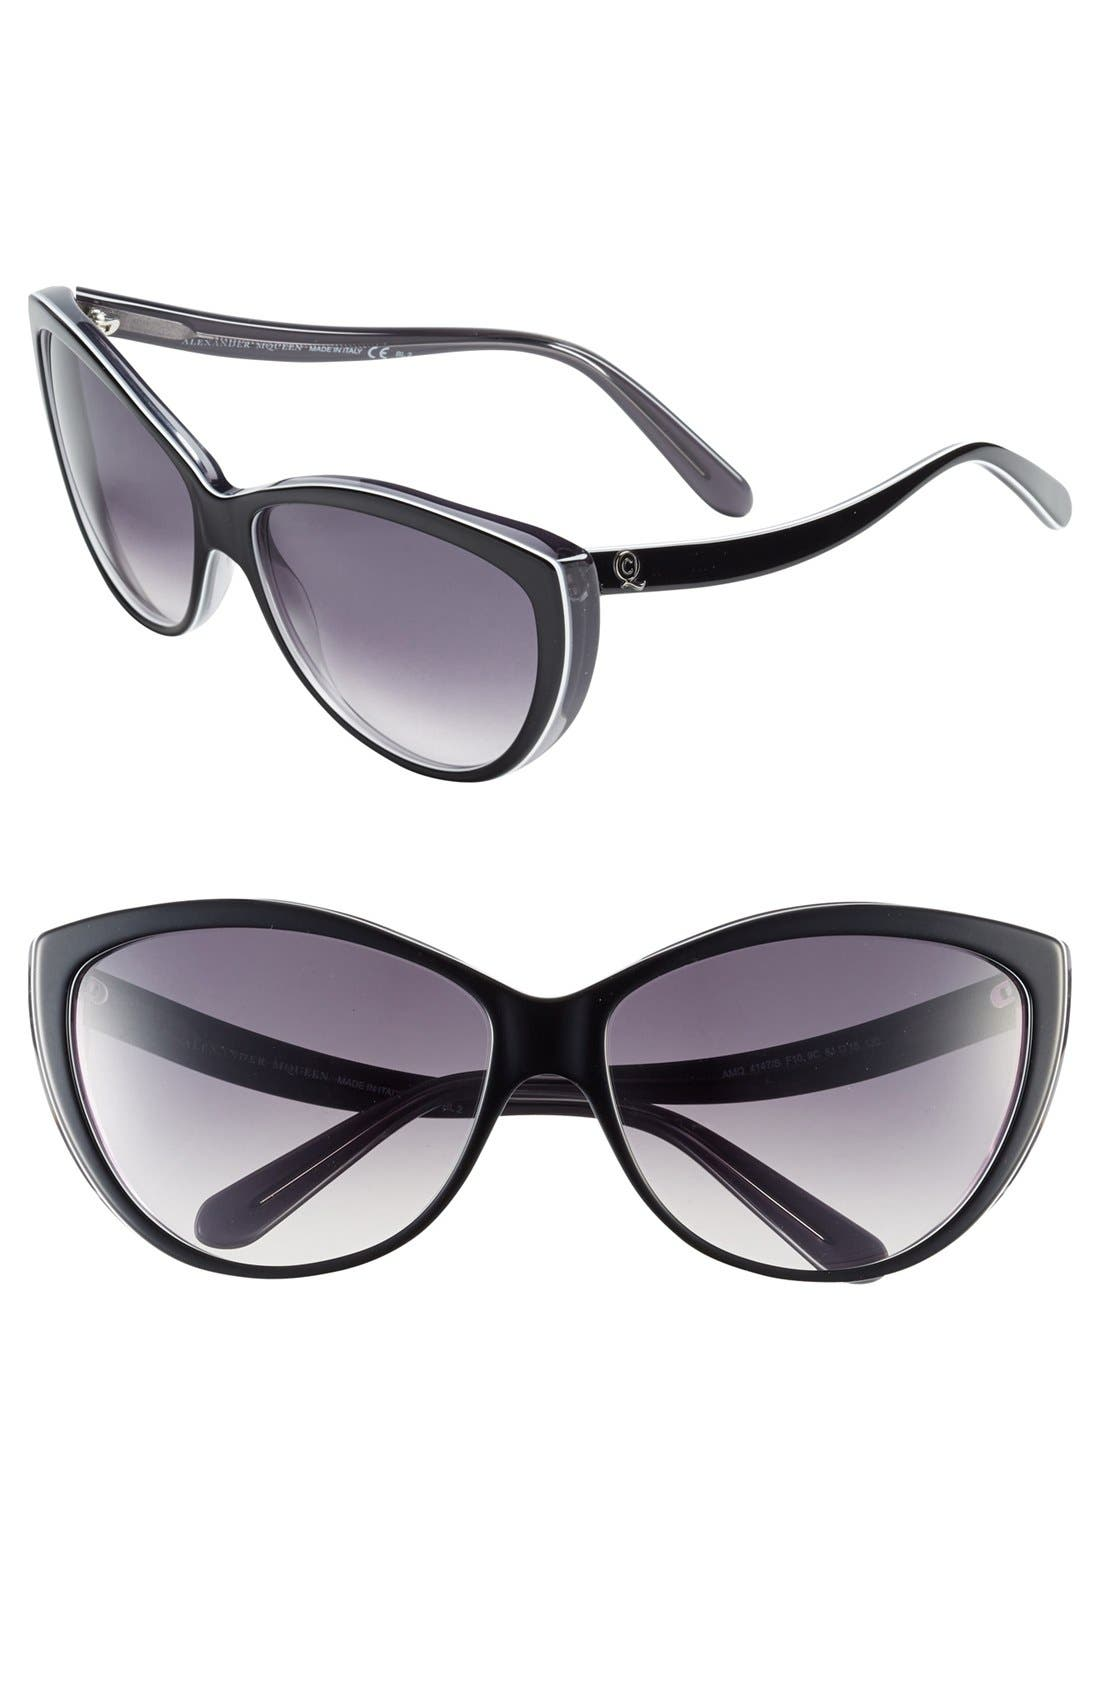 Alternate Image 1 Selected - Alexander McQueen 61mm Two-Tone Cat Eye Sunglasses